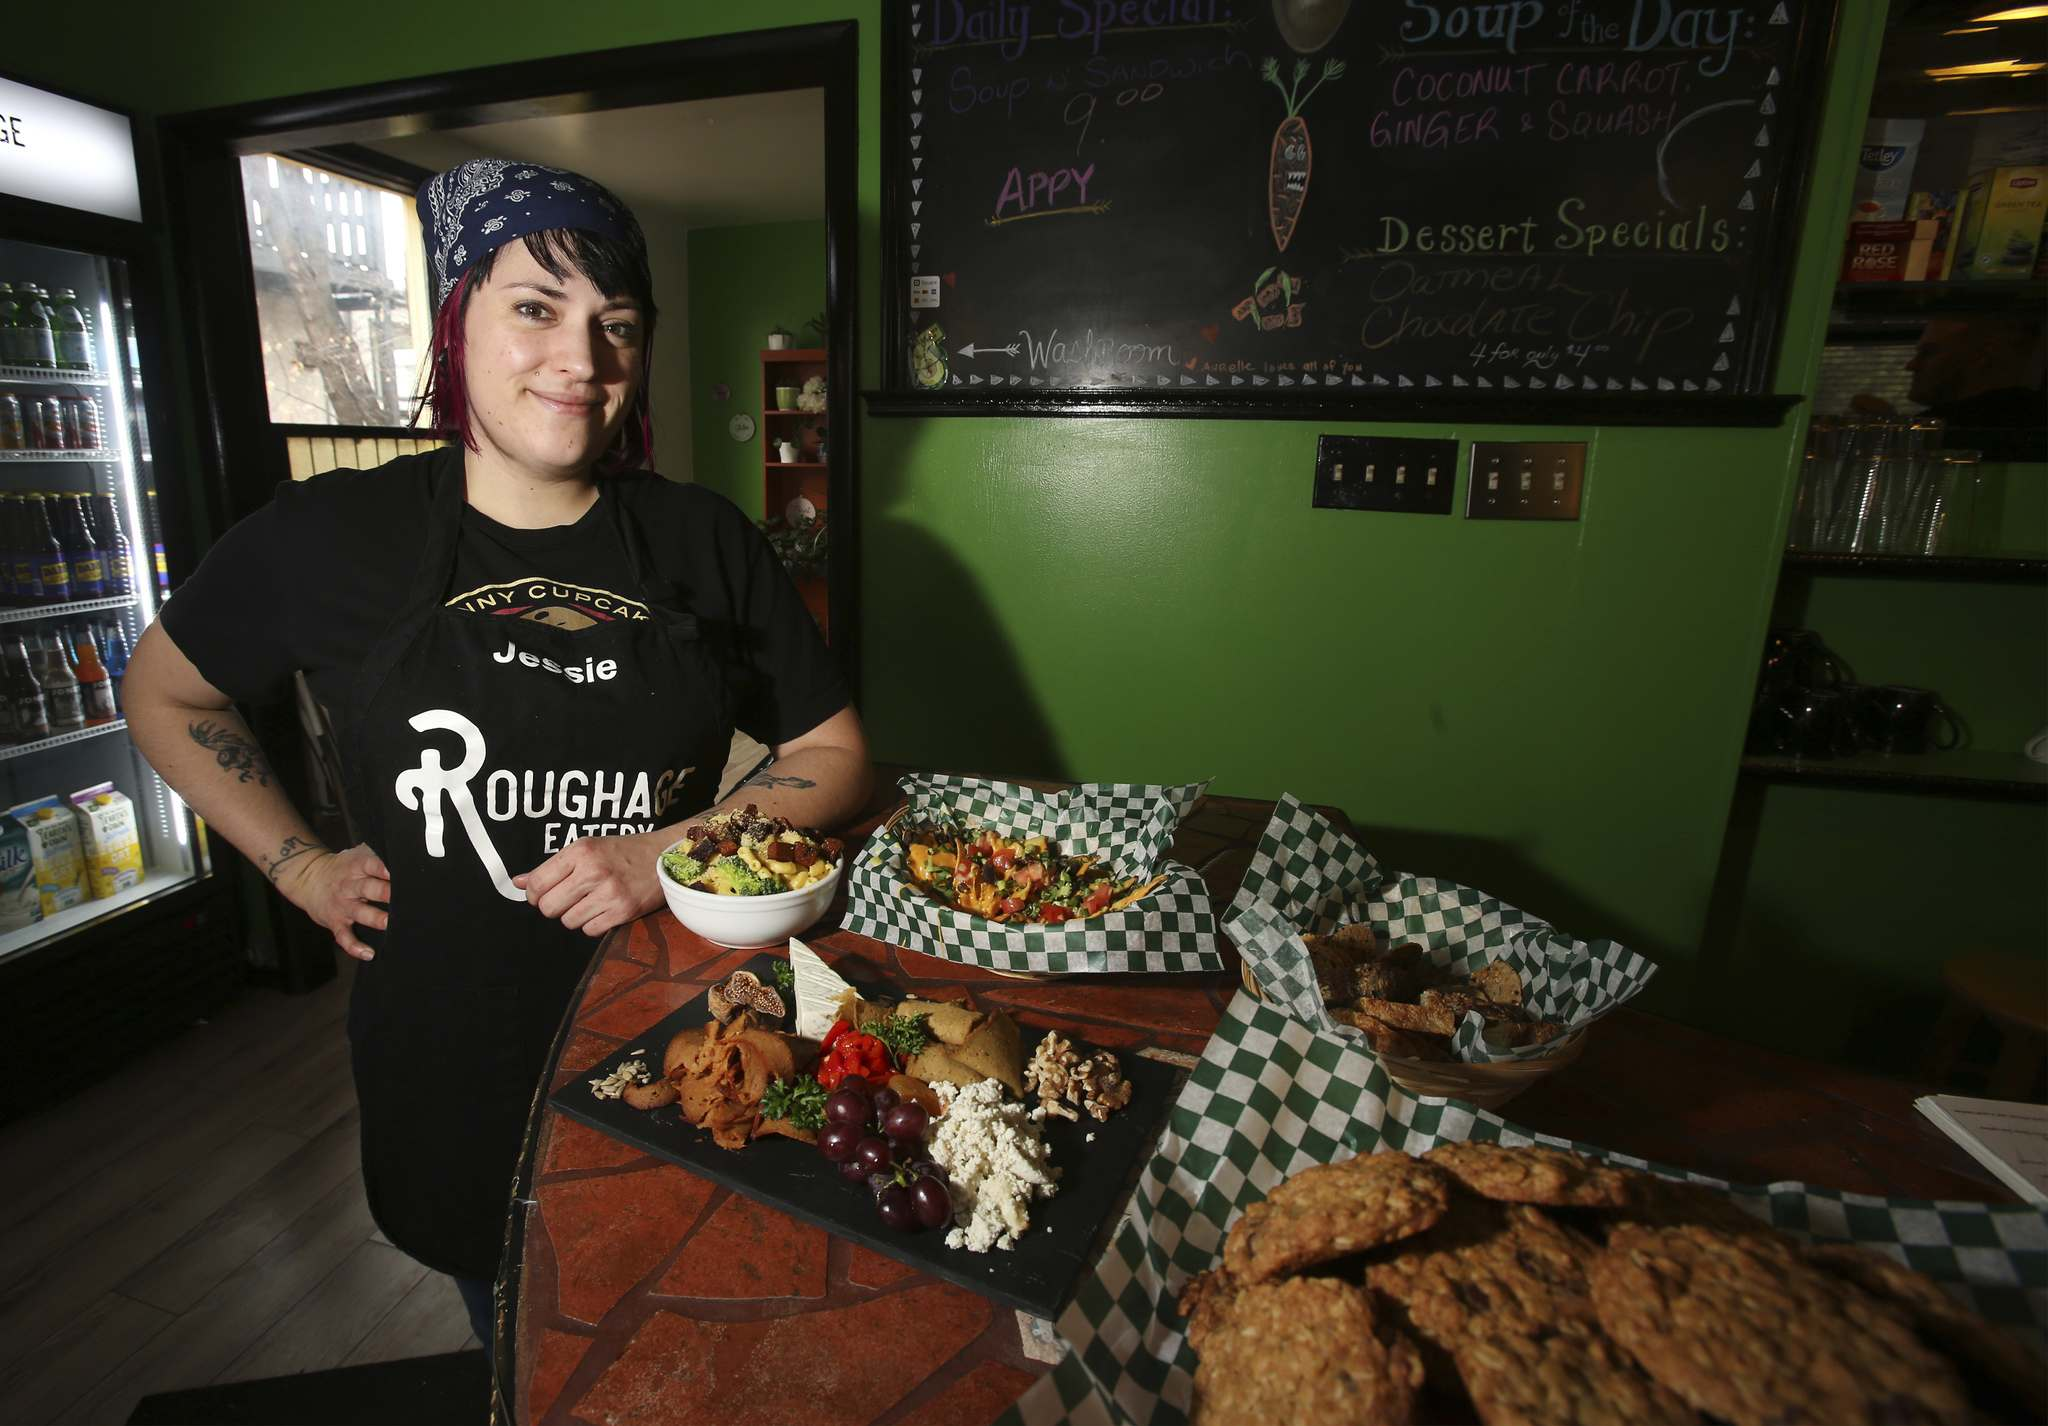 Roughage Eatery co-owner and chef Jessie Hodel. (Shannon Vanraes / Winnipeg Free Press)